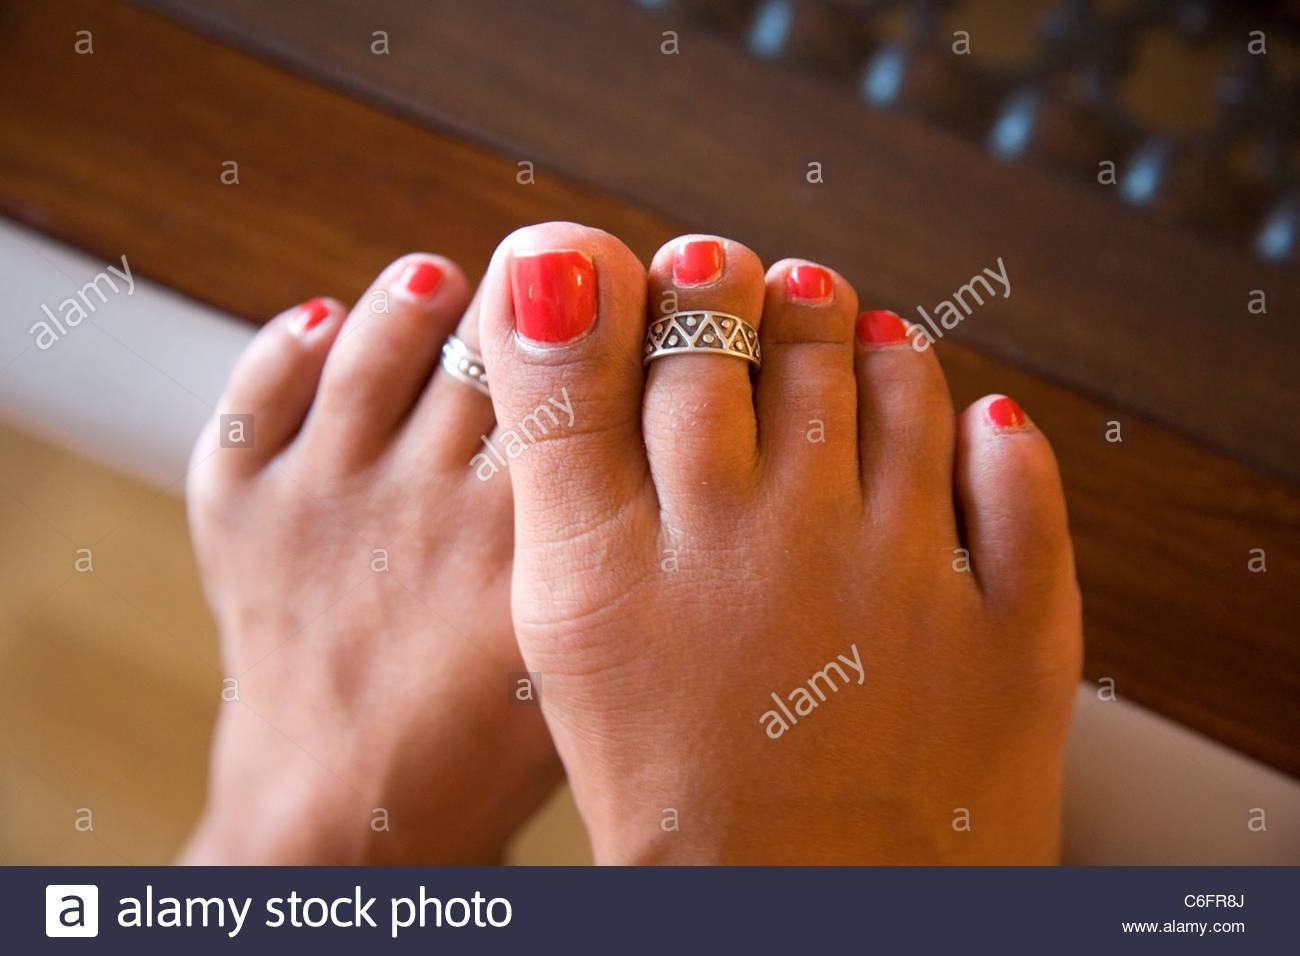 Toe Ring Stock Photos & Toe Ring Stock Images – Alamy For Most Recent Big Toe Rings (View 14 of 15)